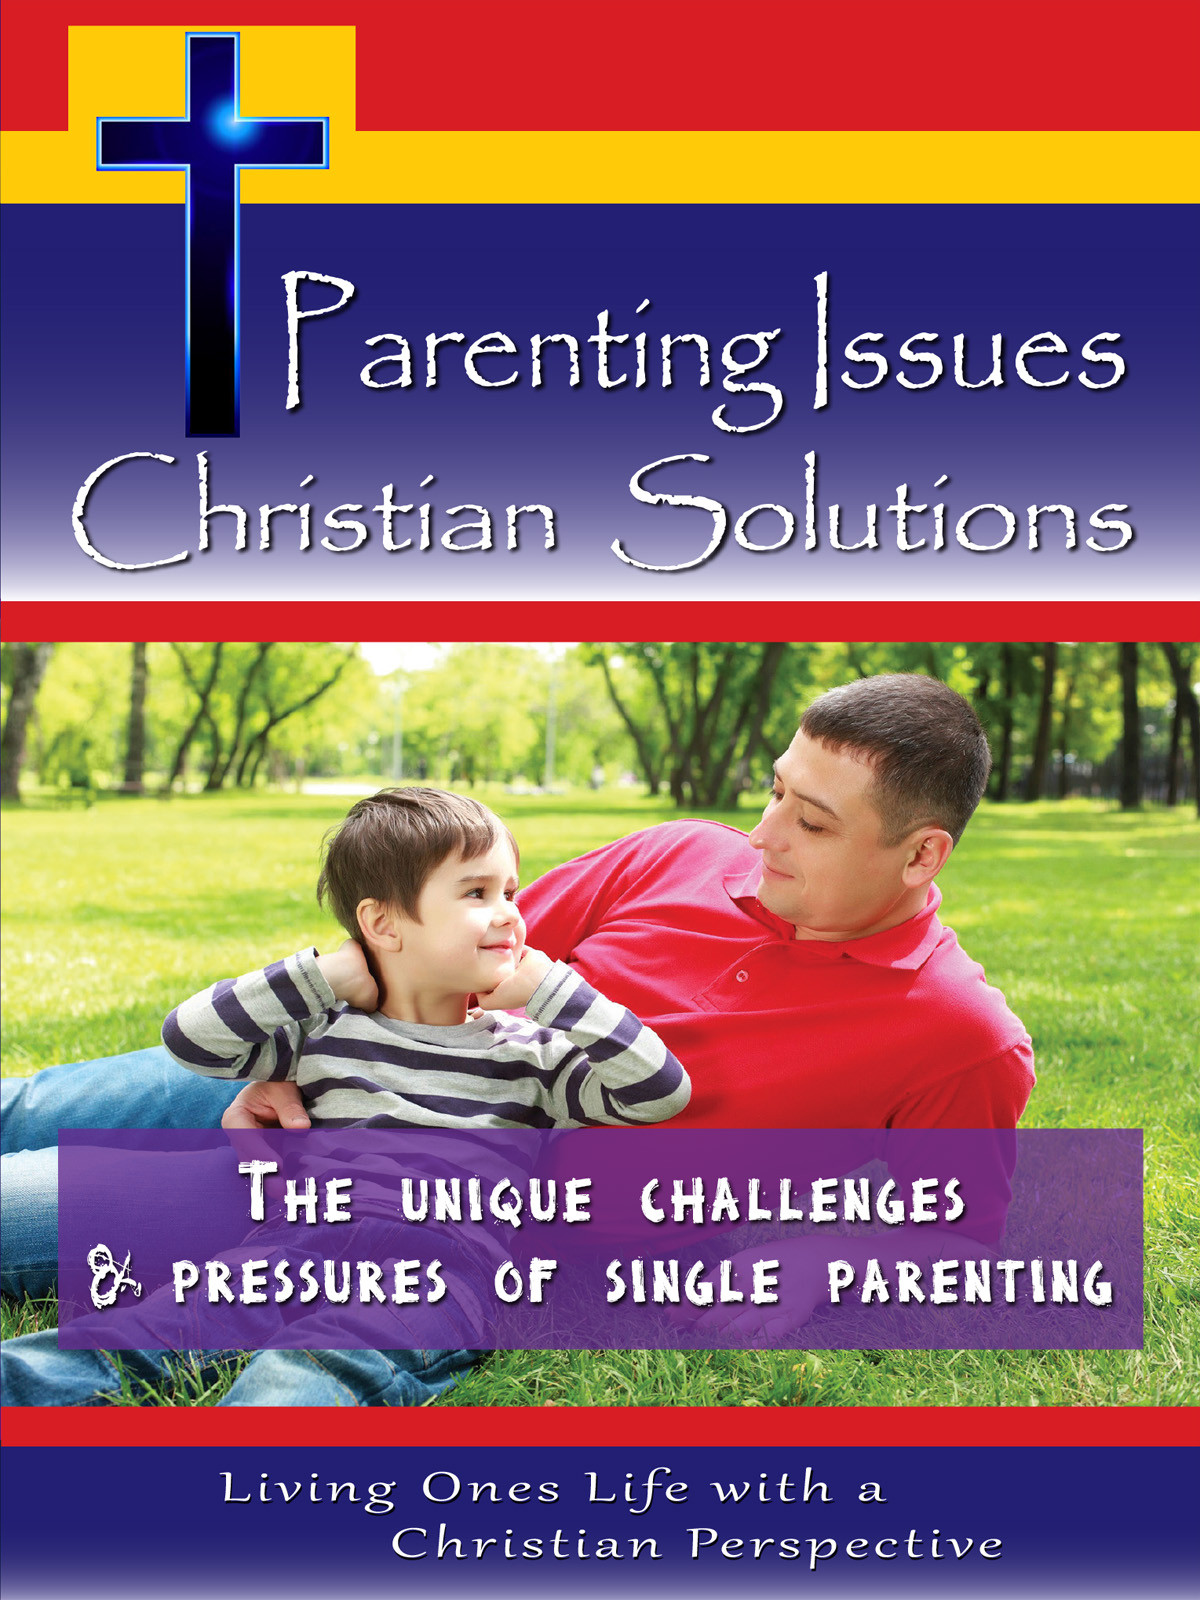 CH10004 - The Unique Challenges & Pressures of Single Parenting